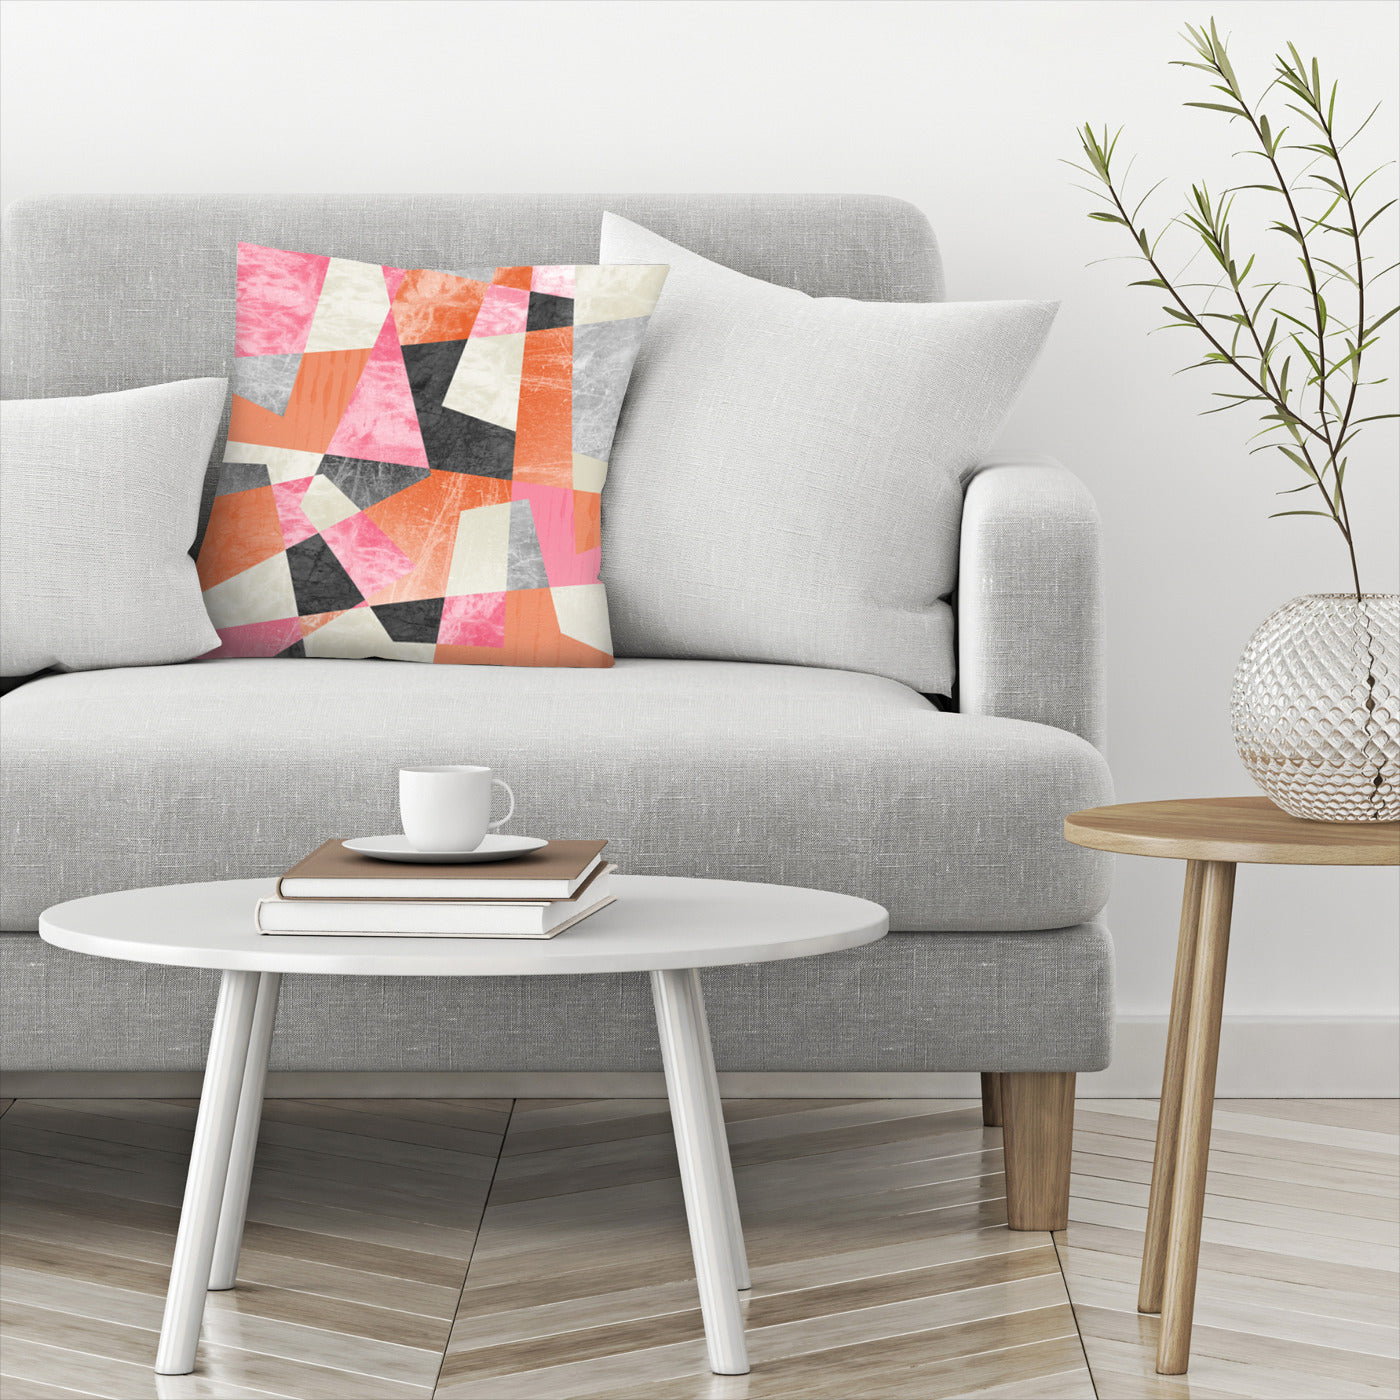 Fragments Xiv by Susana Paz Decorative Pillow - Decorative Pillow - Americanflat